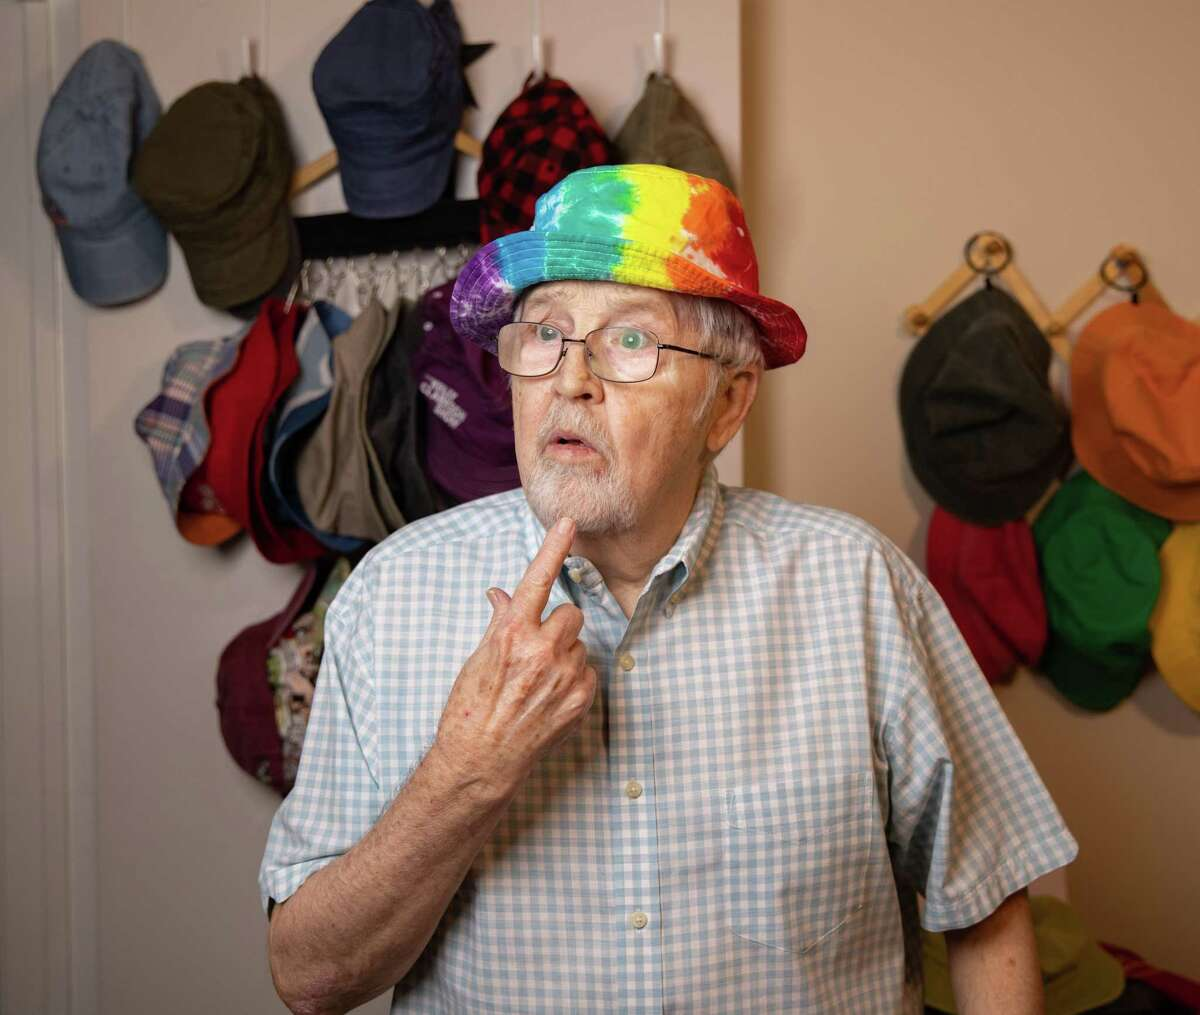 Stephen Austin, aka Old Man Steve on TikTok, poses for photos at his home in Richland Hills on Monday, Feb. 8, 2021. Austin is an 82-year-old TikTok star with over a million followers.